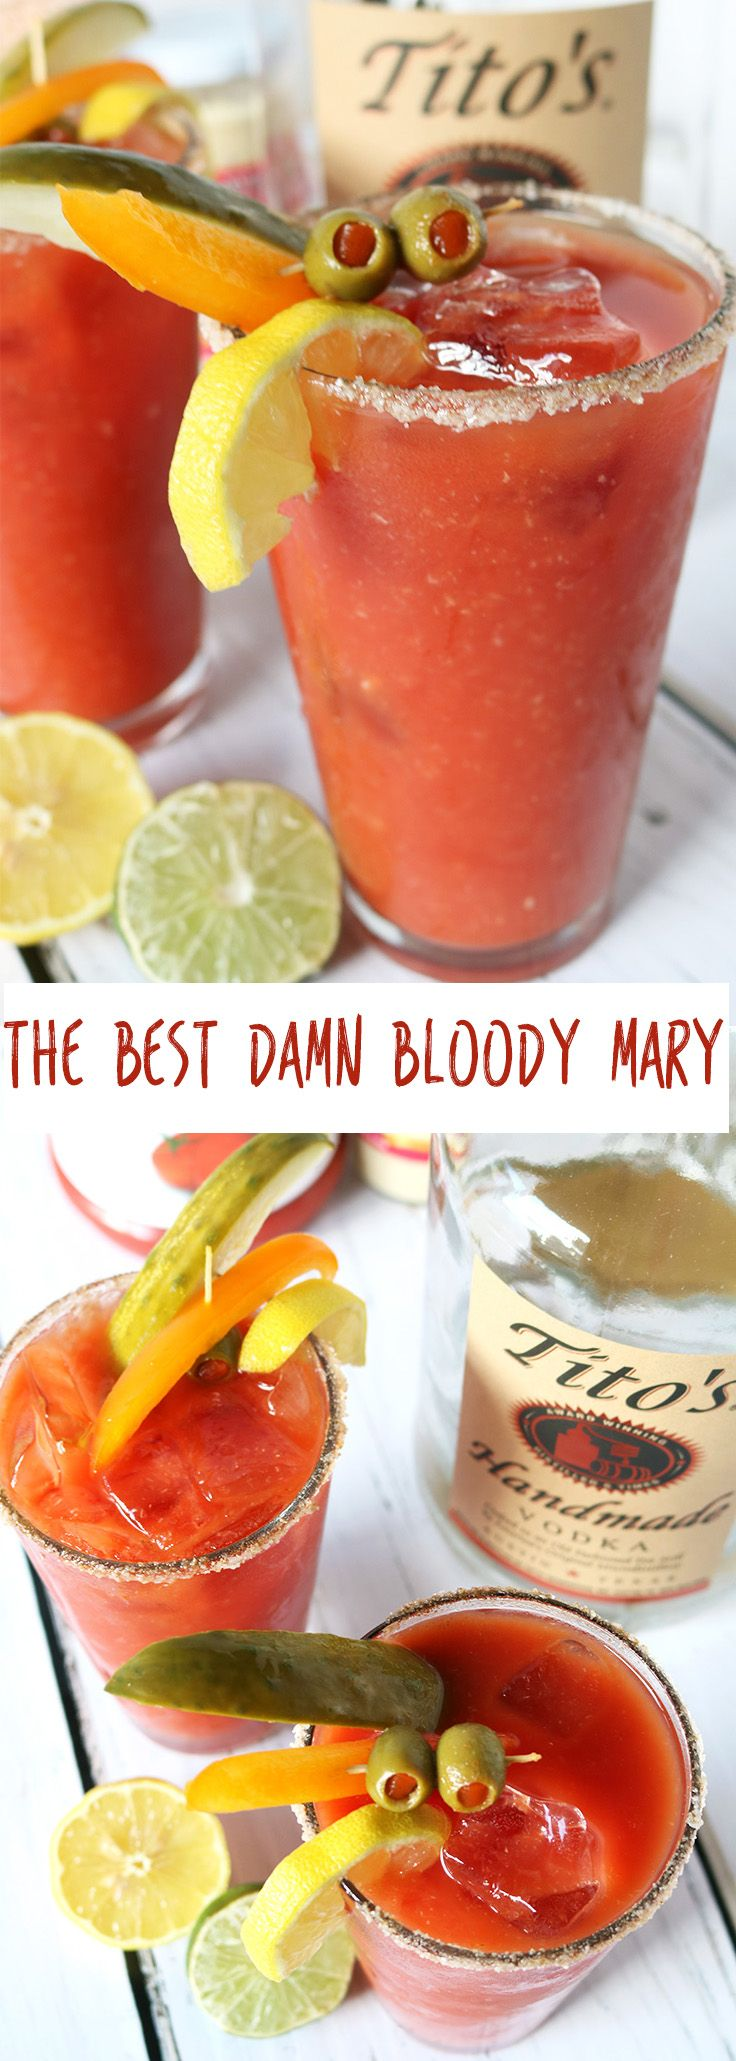 Best Damn Bloody Mary